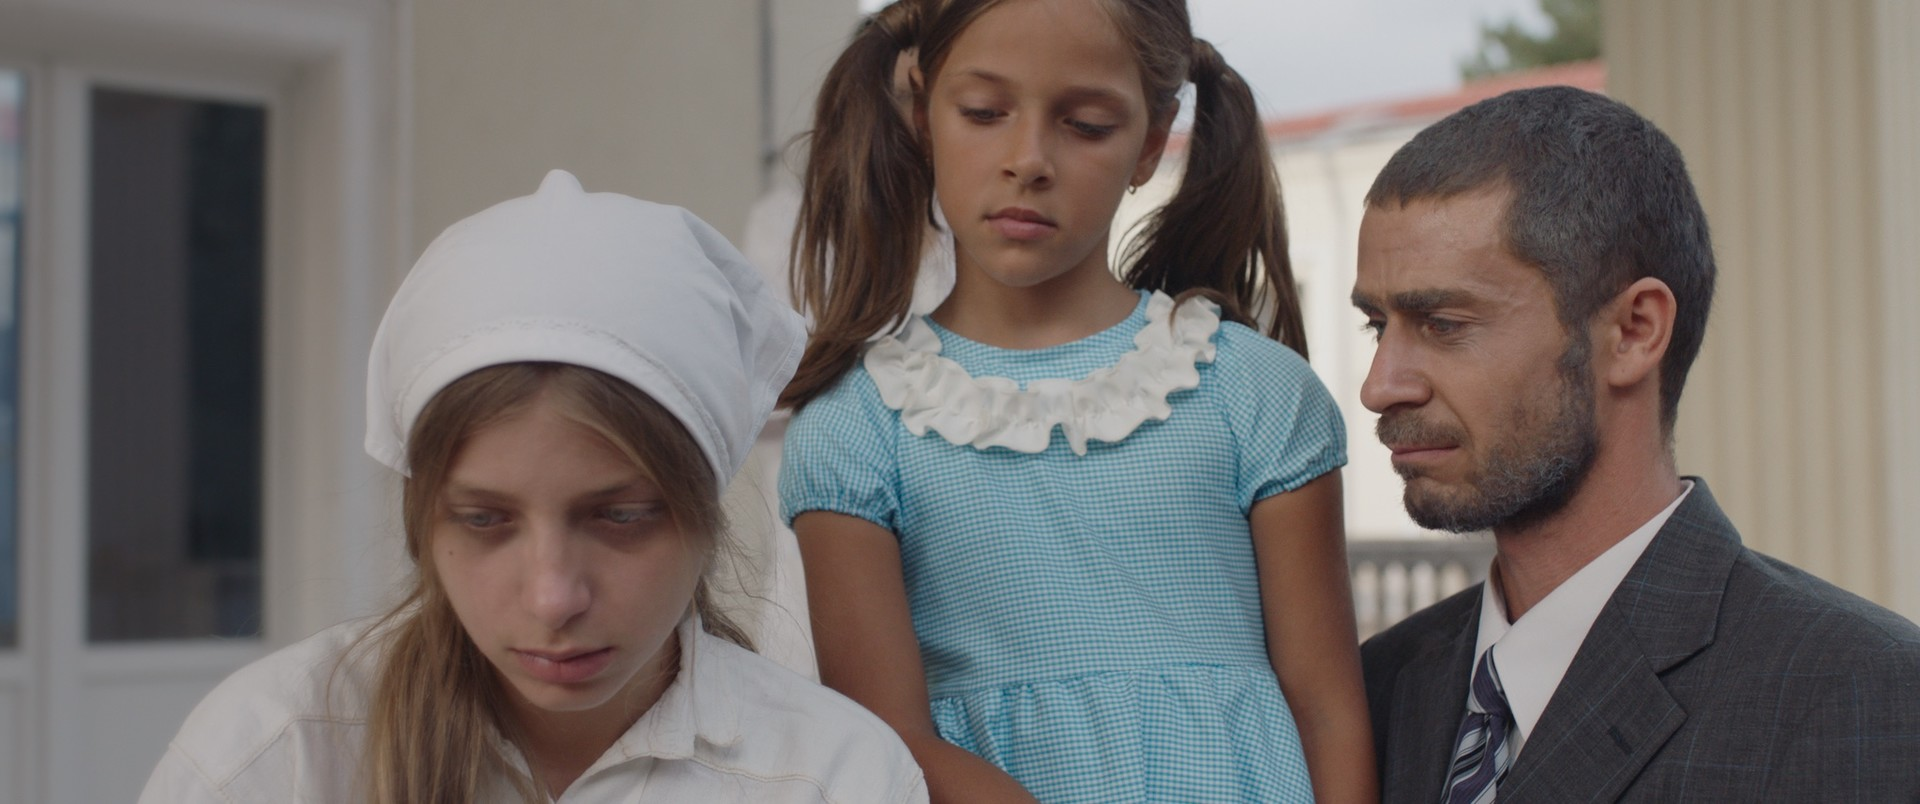 Toma Enache's latest film 'Between Pain and Amen' is being hailed as one of the best examples of independent filmmaking: here's why.